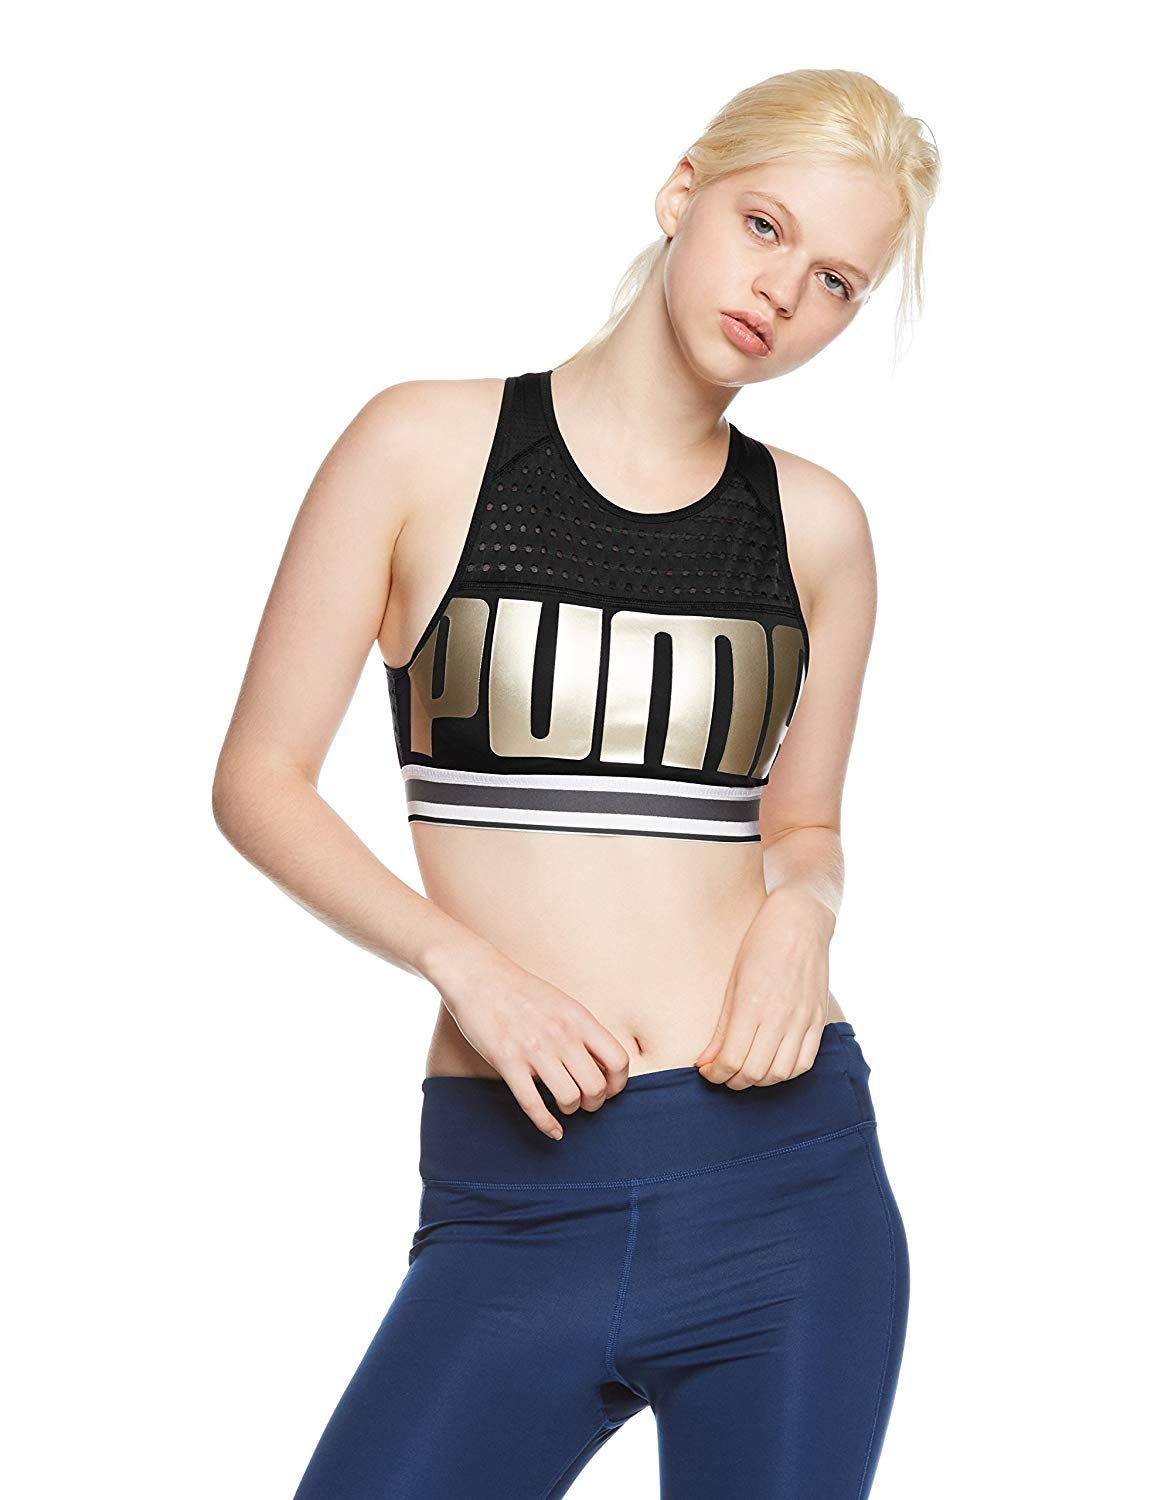 9c1e4e0adde4f Puma Women s M Bra Top  Amazon.co.uk  Sports   Outdoors